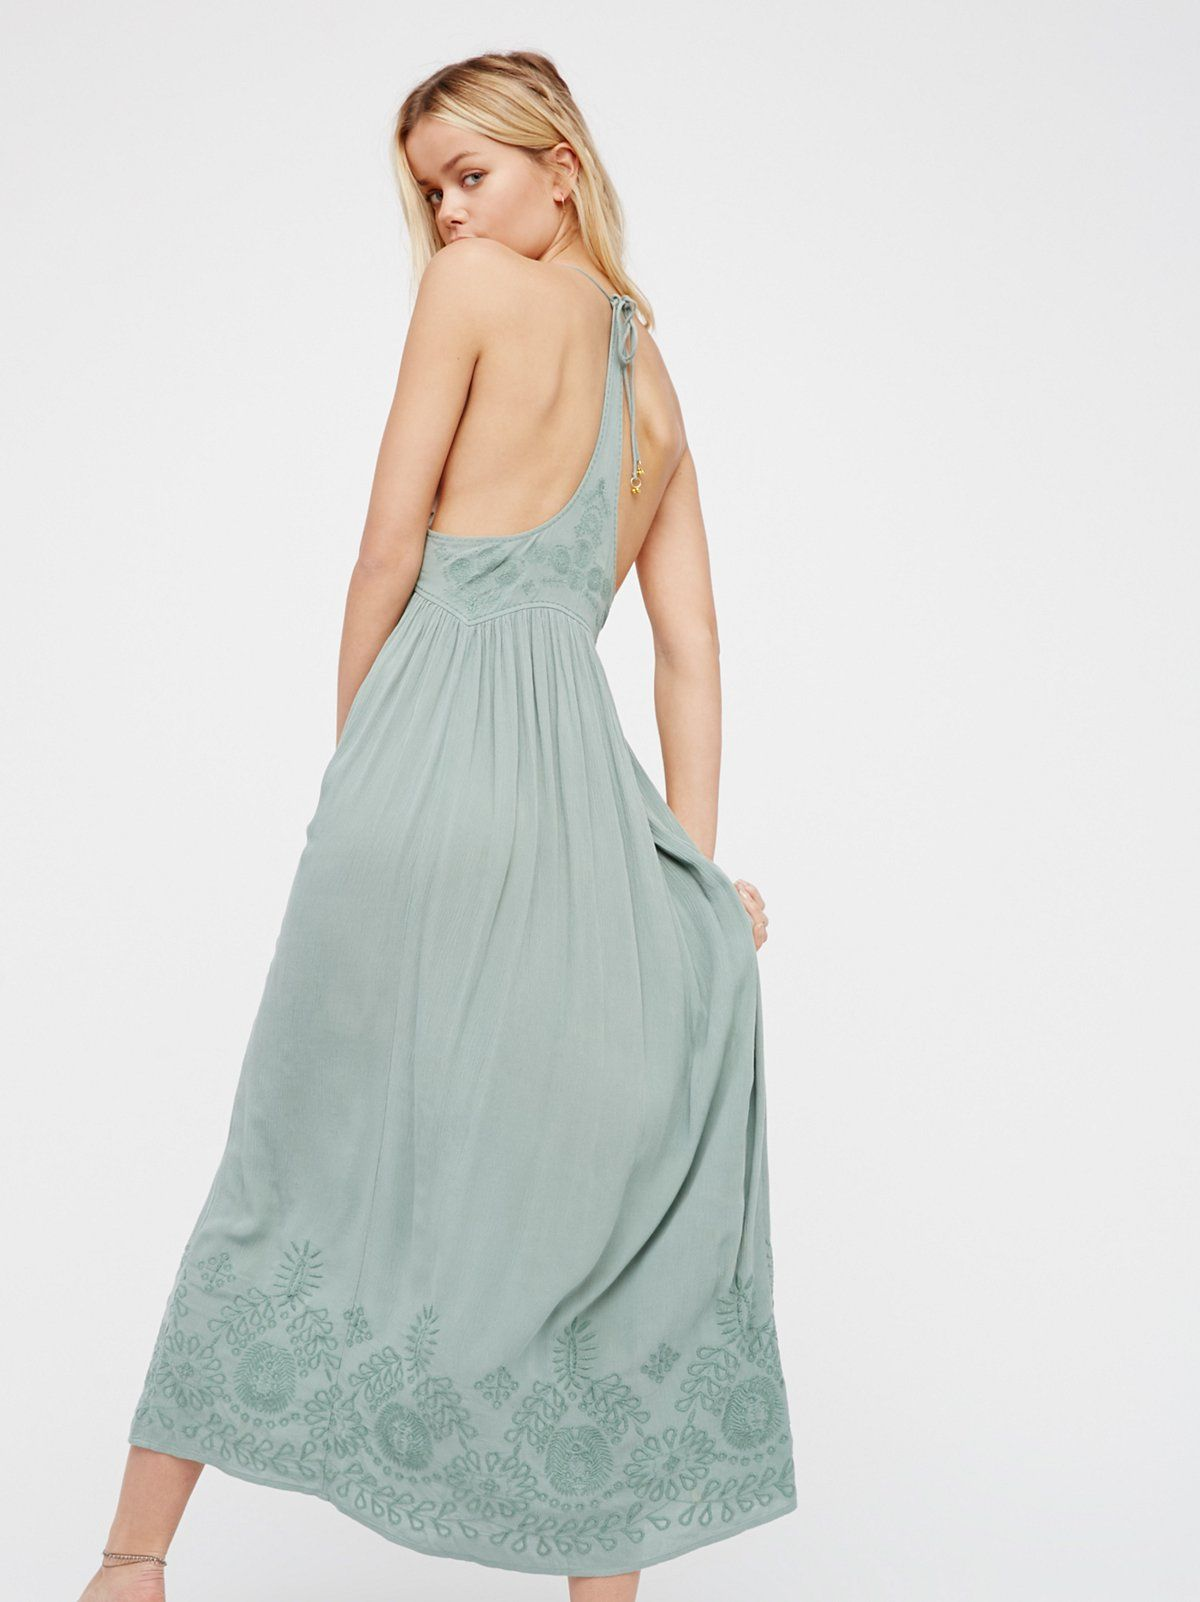 Embroidered Elaine Maxi Slip | Embroidered maxi slip dress with ...